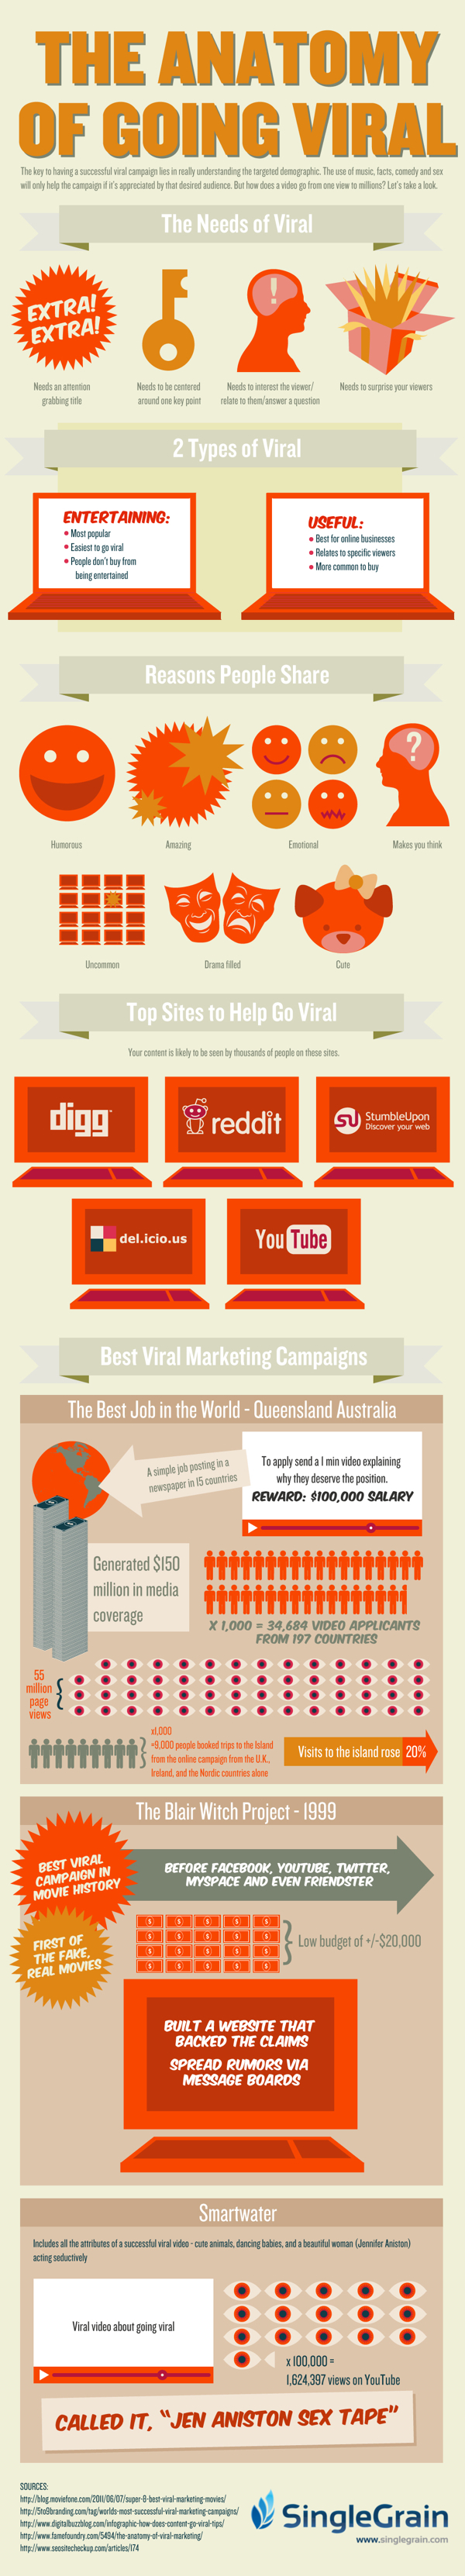 Characteristics of Going Viral